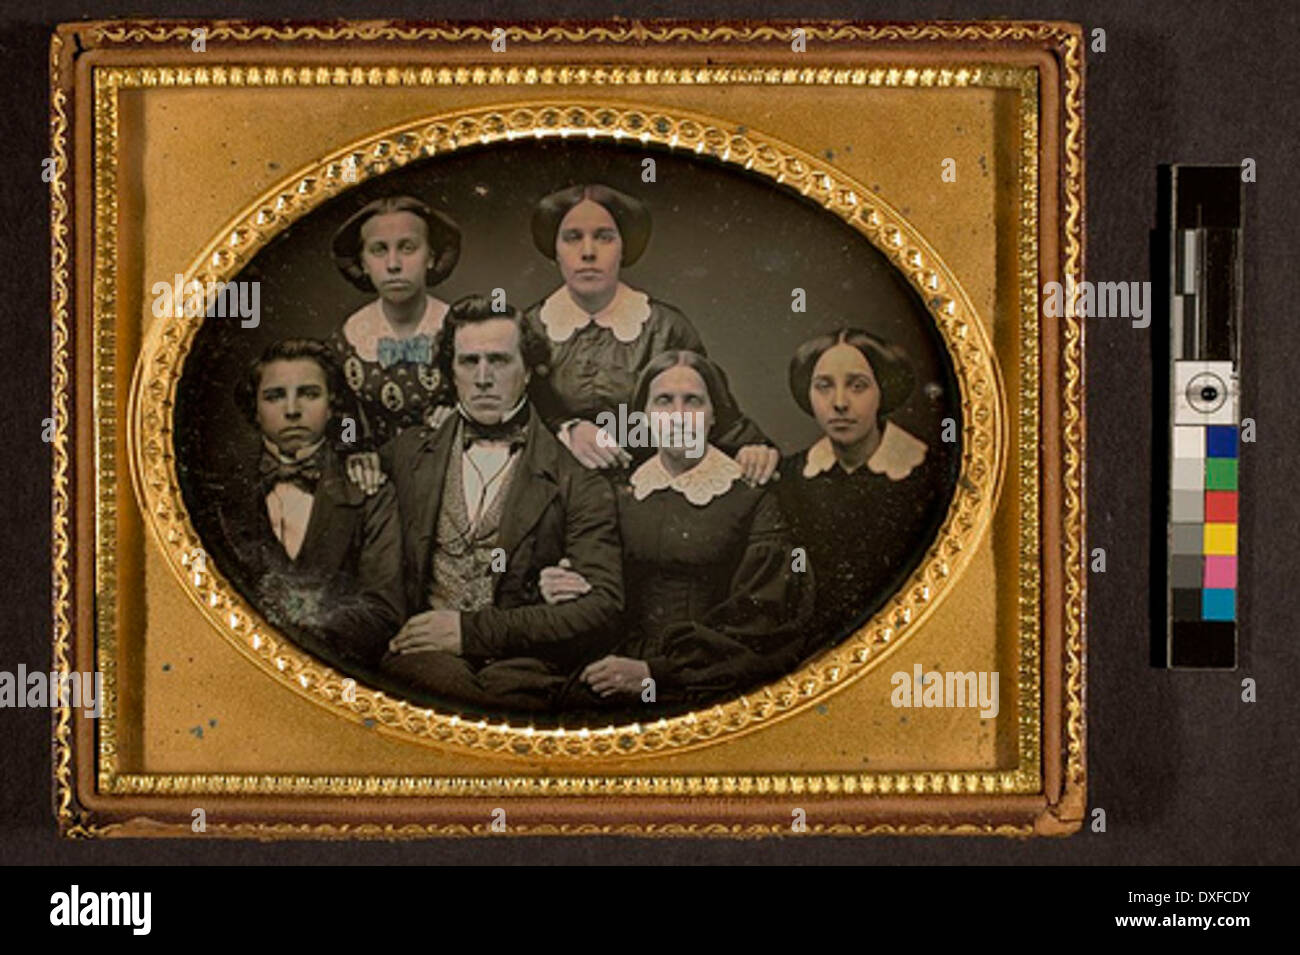 Portrait of unidentified family Portrait of unidentified family - Stock Image